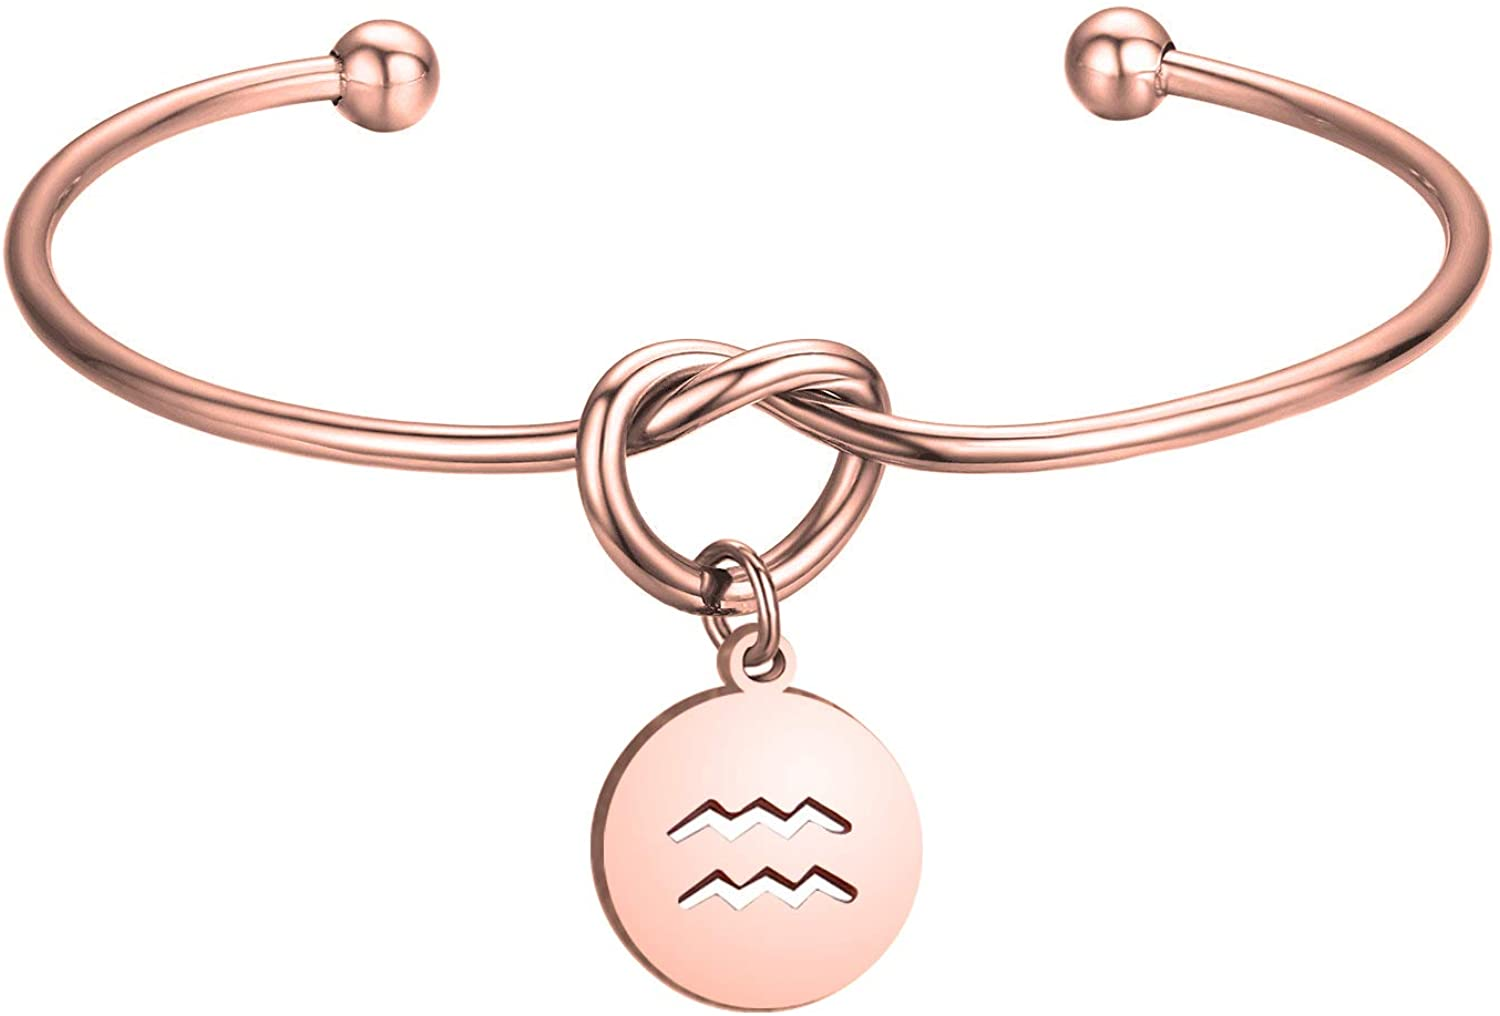 Zuo Bao Rose Gold Love Knot Bracelet Tie The Knot Cuff Bangle with Zodiac Signs Disc Charm